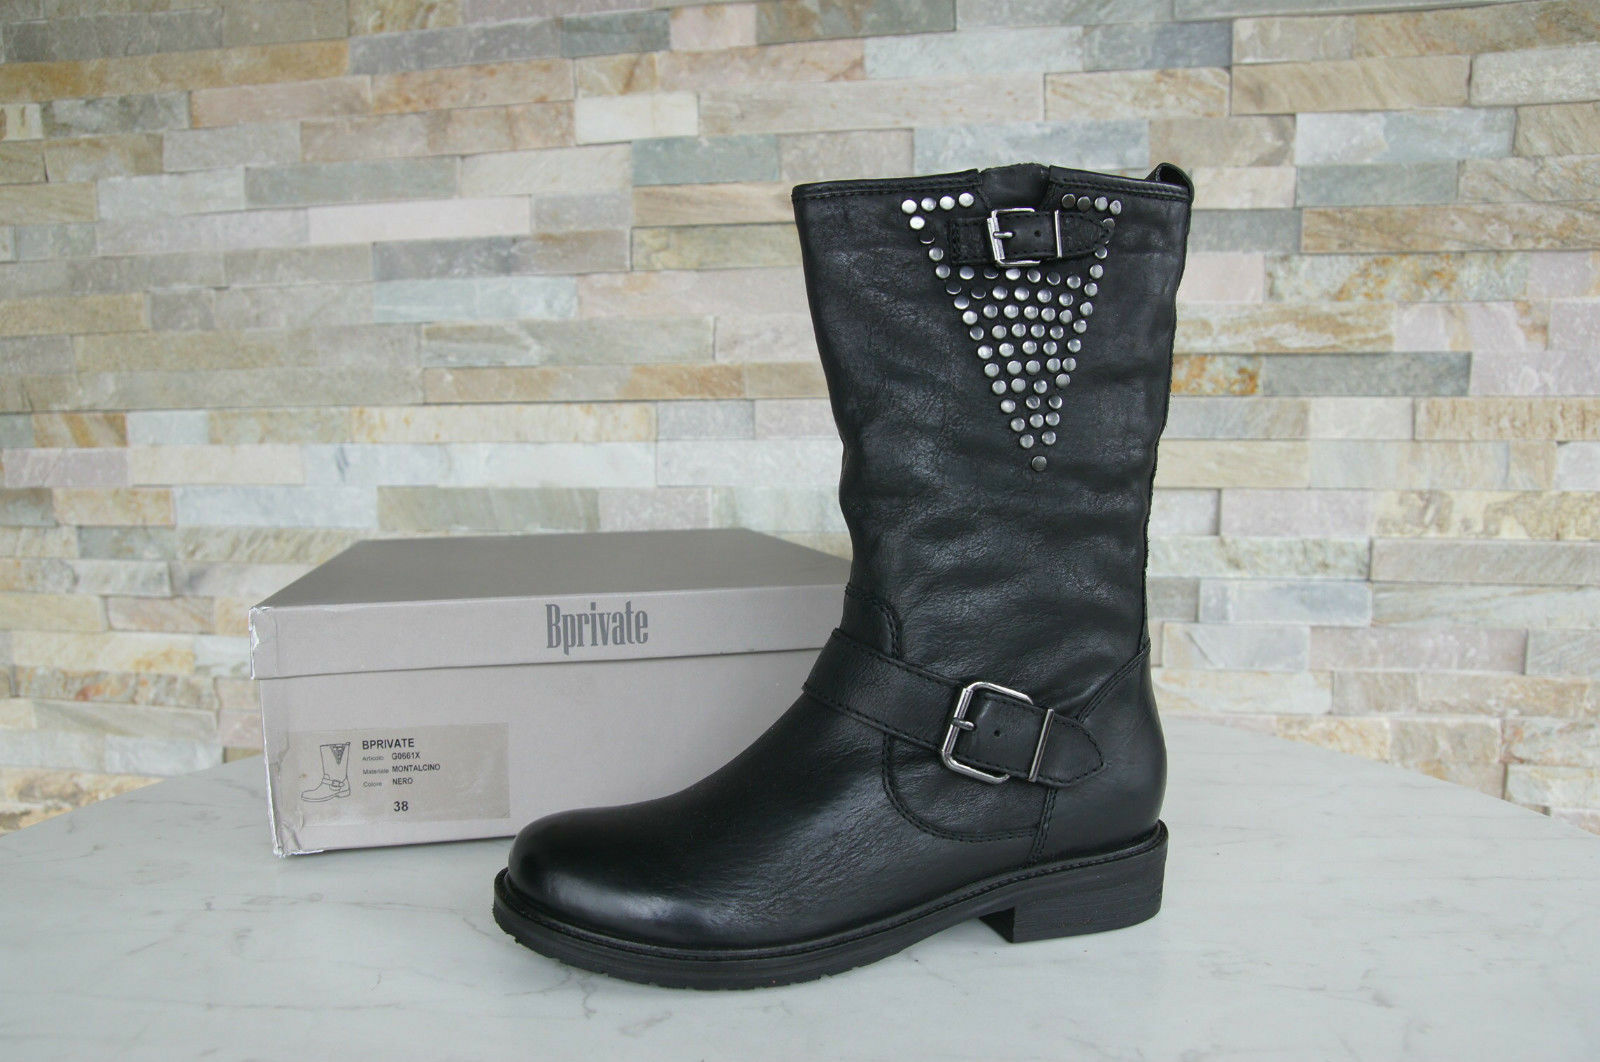 Bprivate 38 Boots Ankle Boots Boots shoes Vintage New Previously